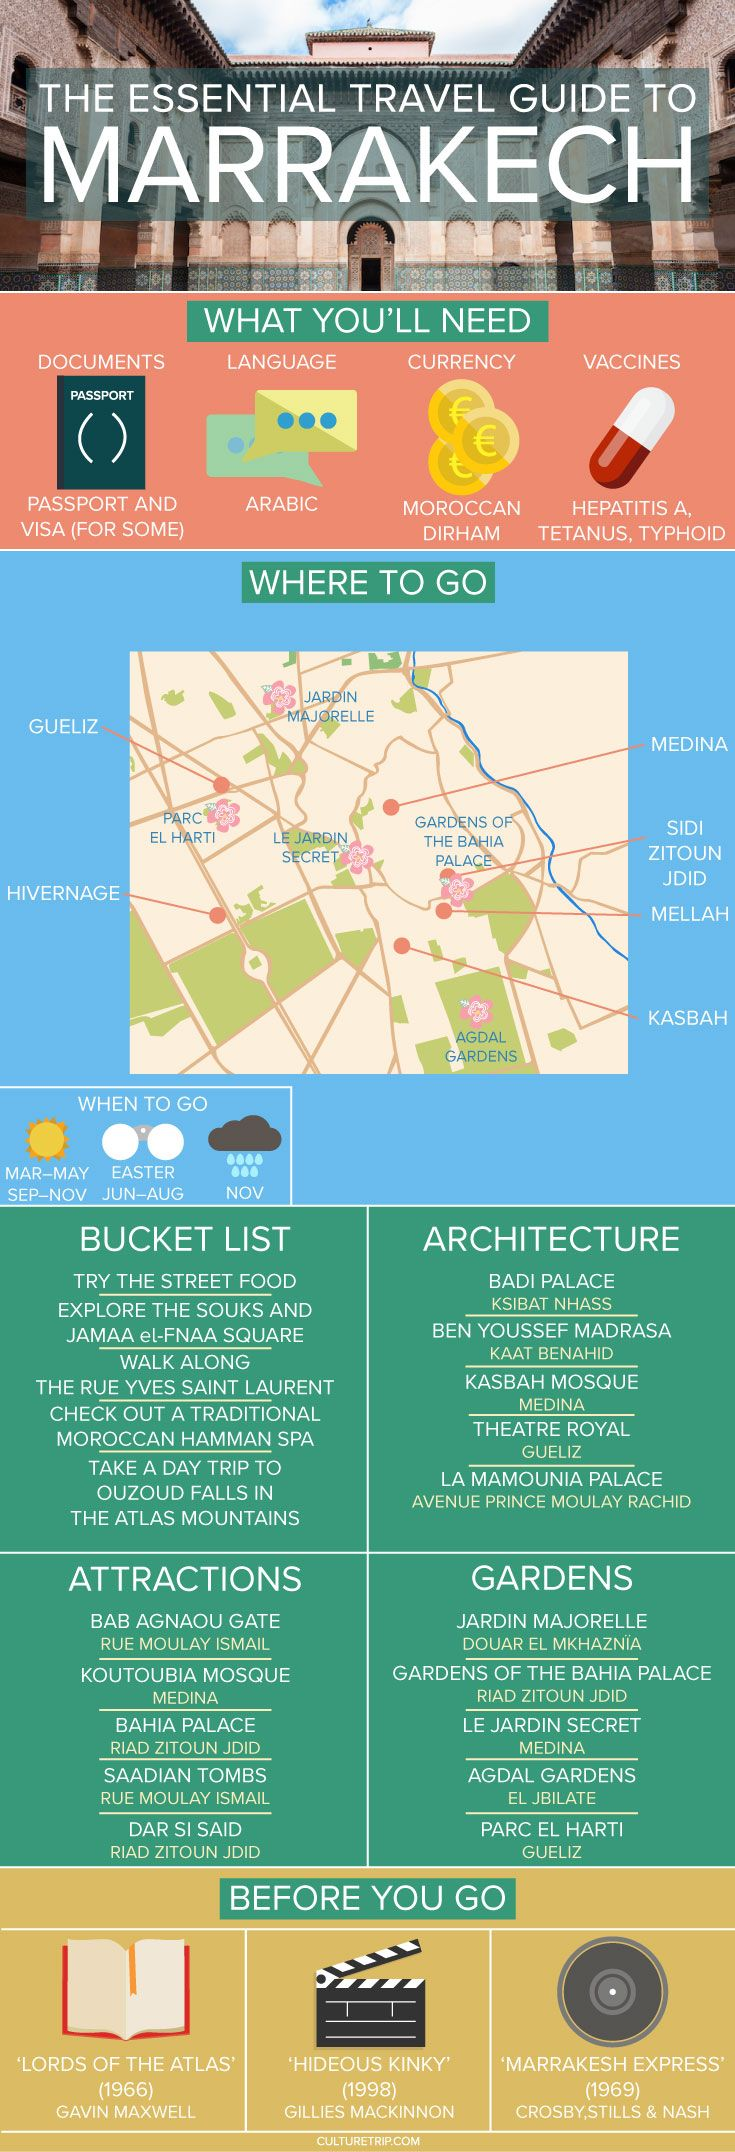 The Essential Travel Guide to Marrakech (Infographic)|Pinterest: @theculturetrip